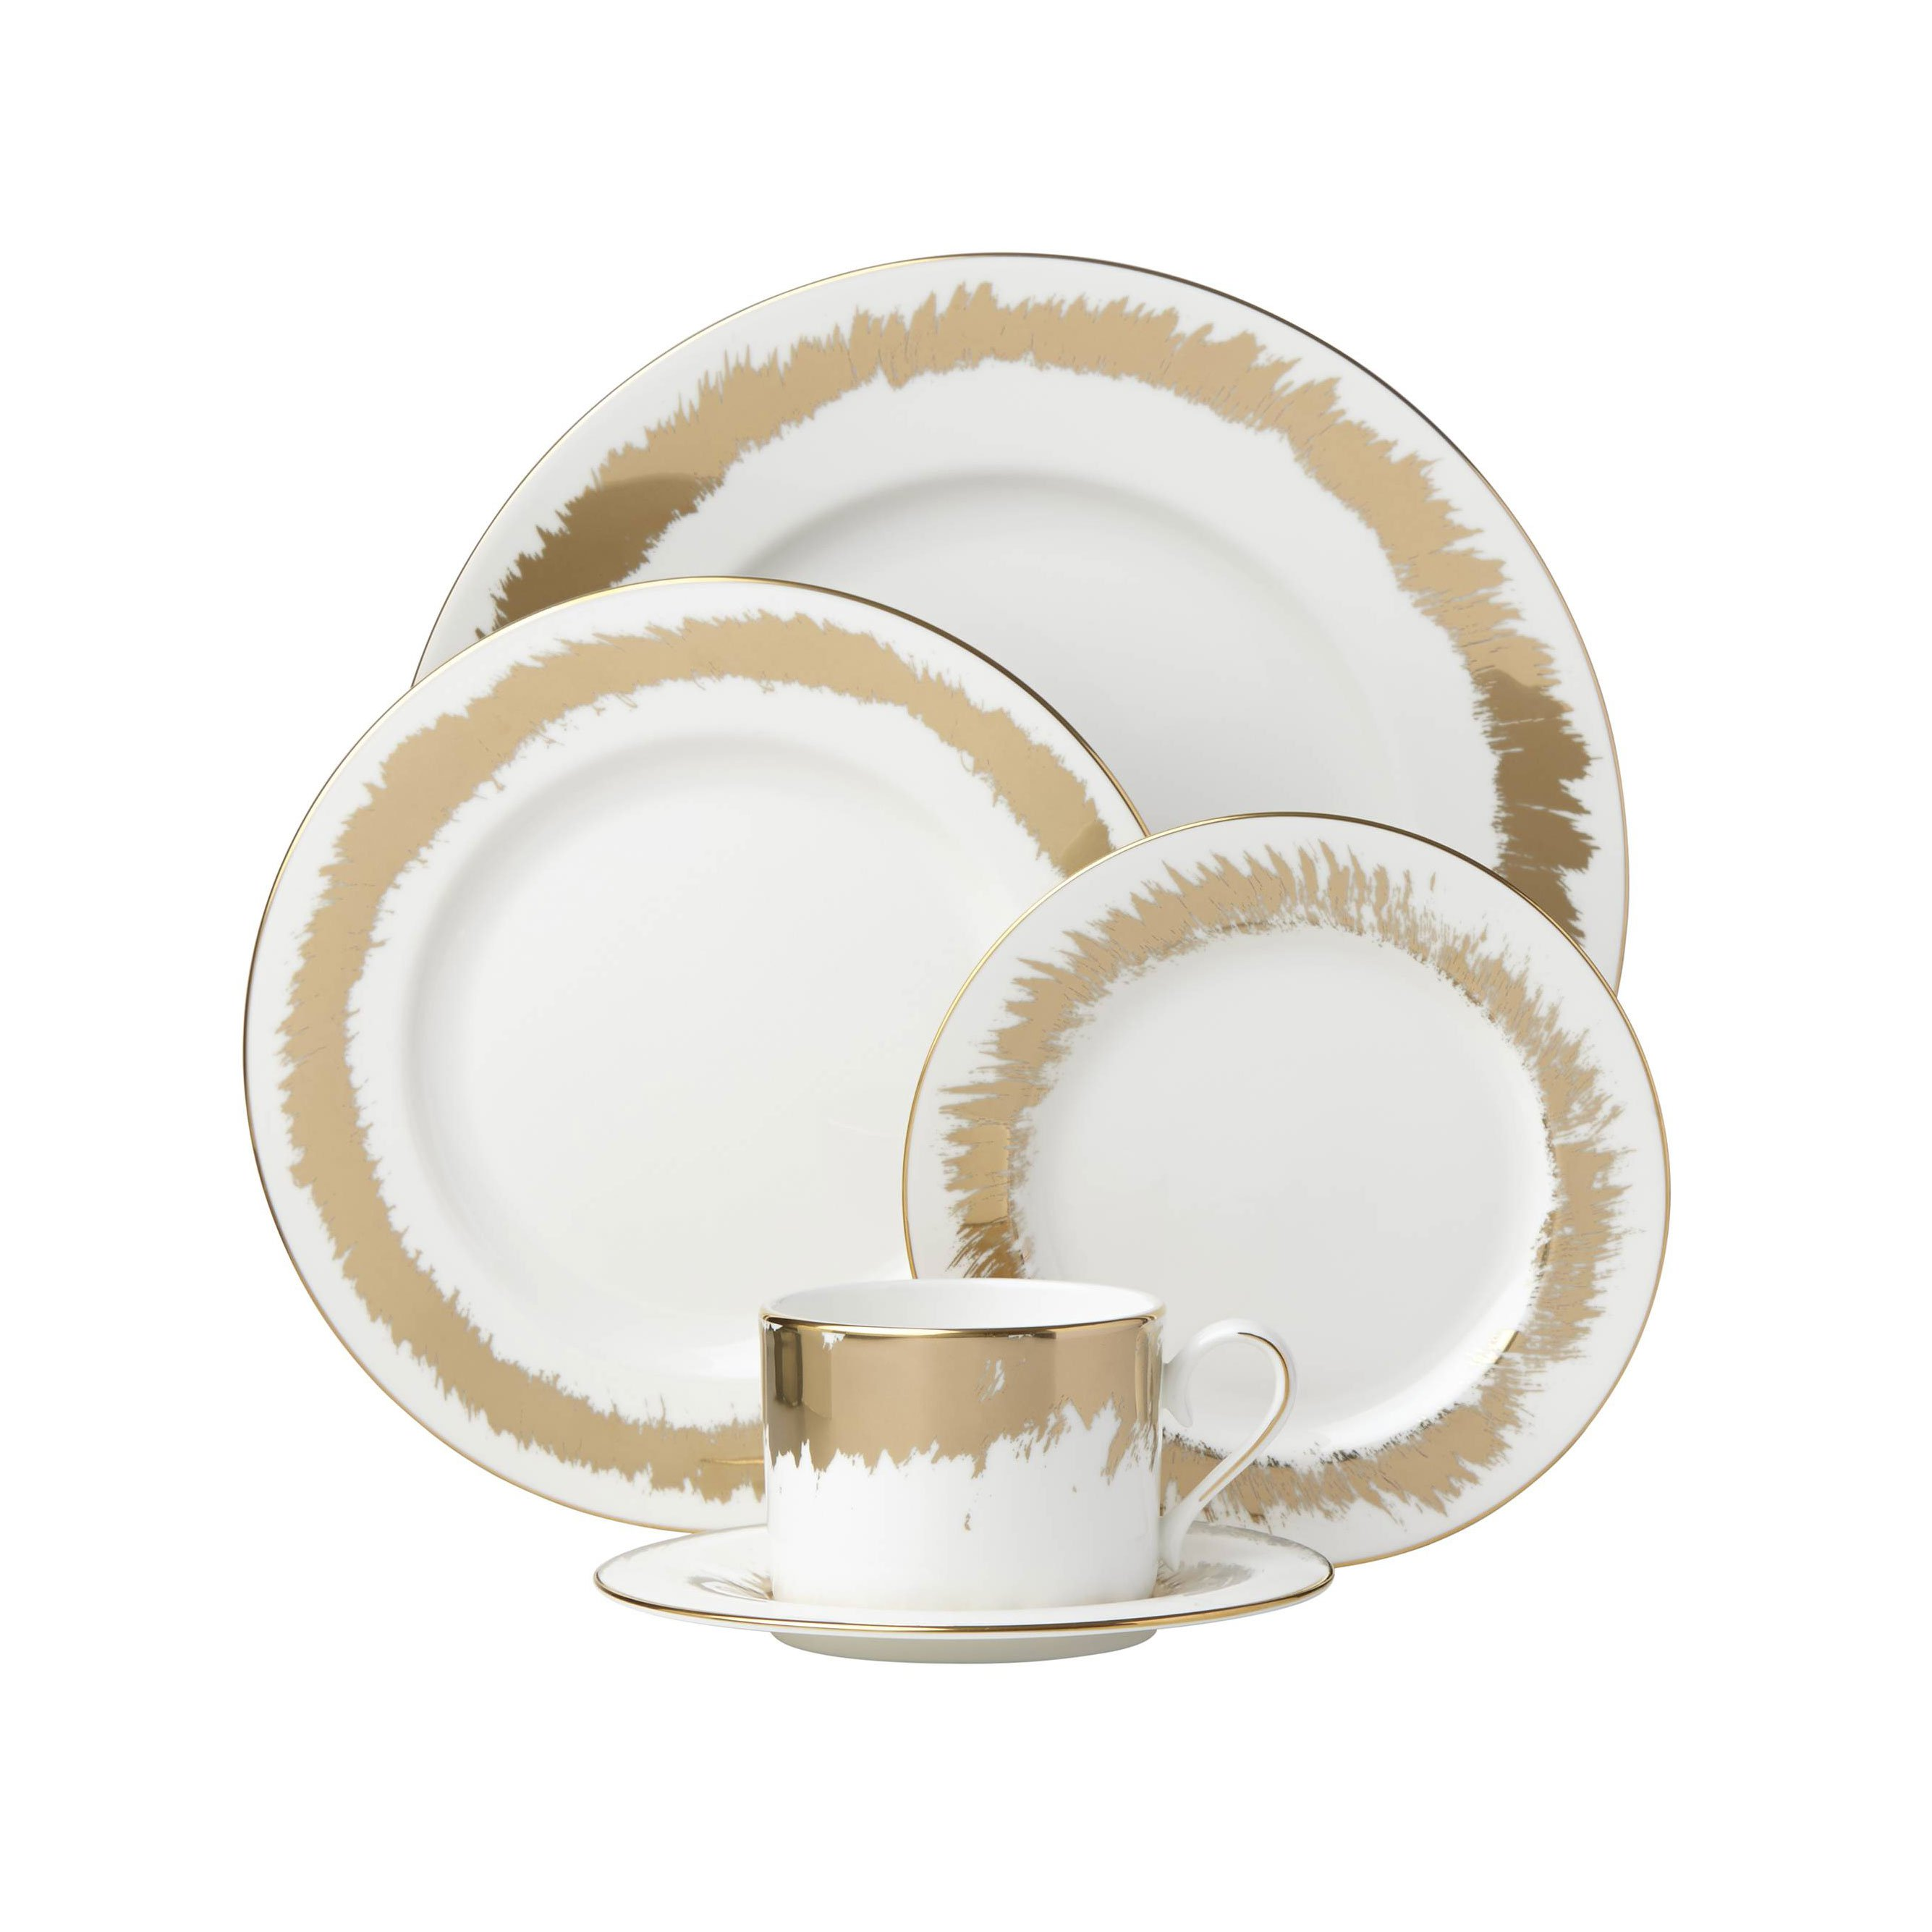 Casual Radiance Dinnerware Collection by Lenox - 5-Piece Place Setting